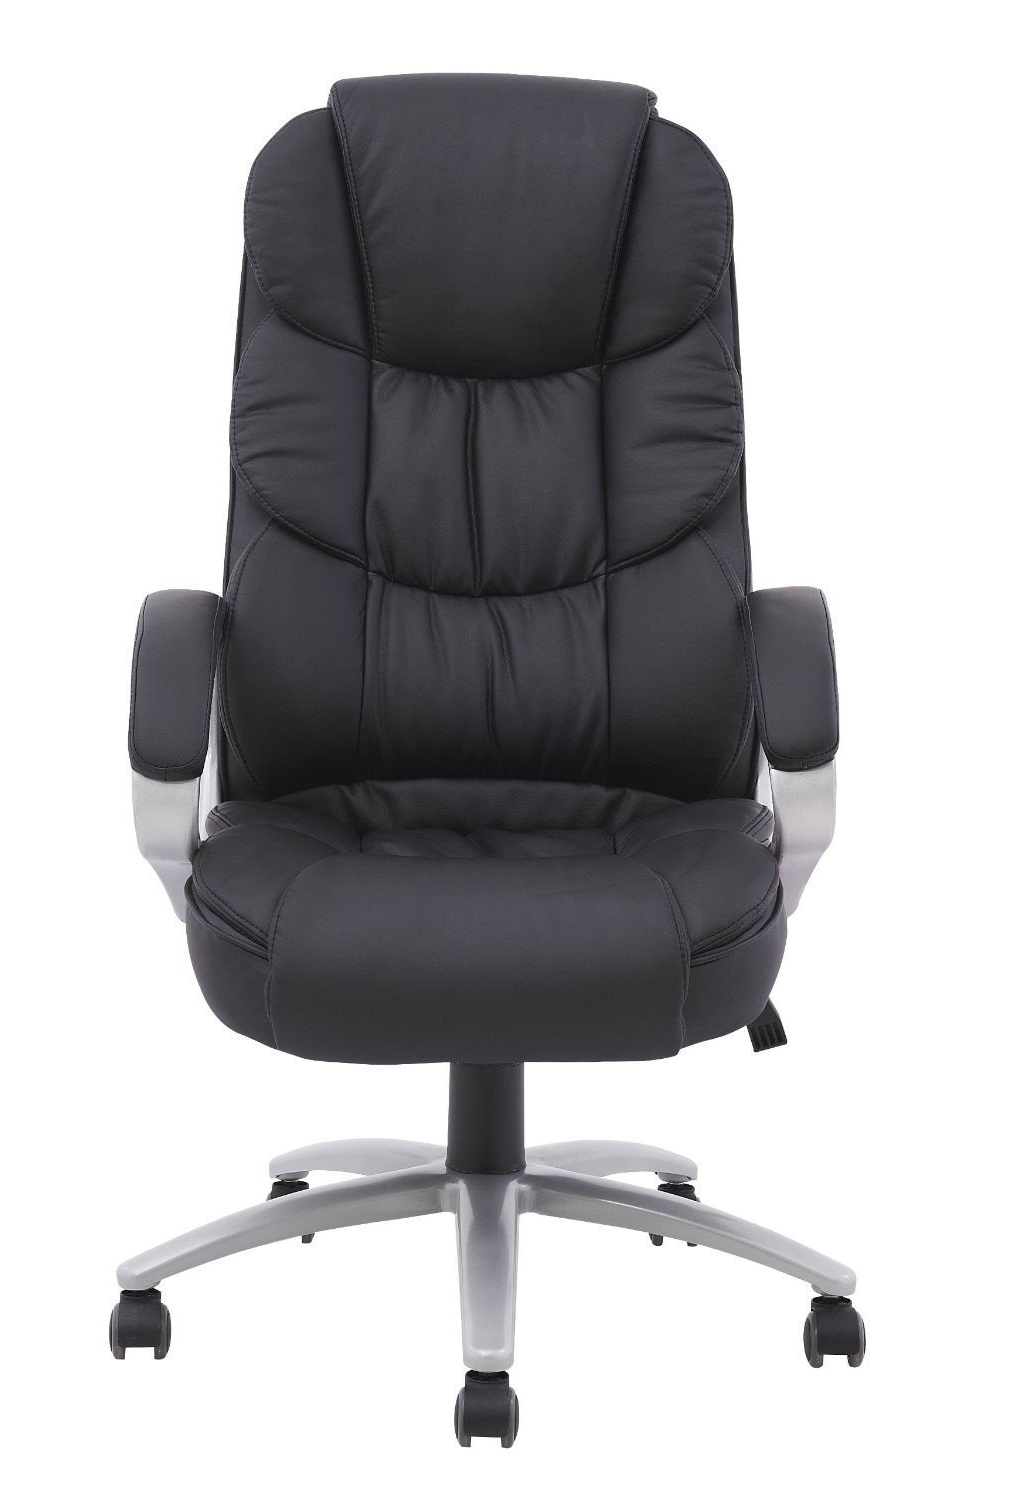 Widely Used High Back Executive Leather Computer Chair Unboxing / Setup – Youtube With Leather Executive Office Chairs (View 20 of 20)